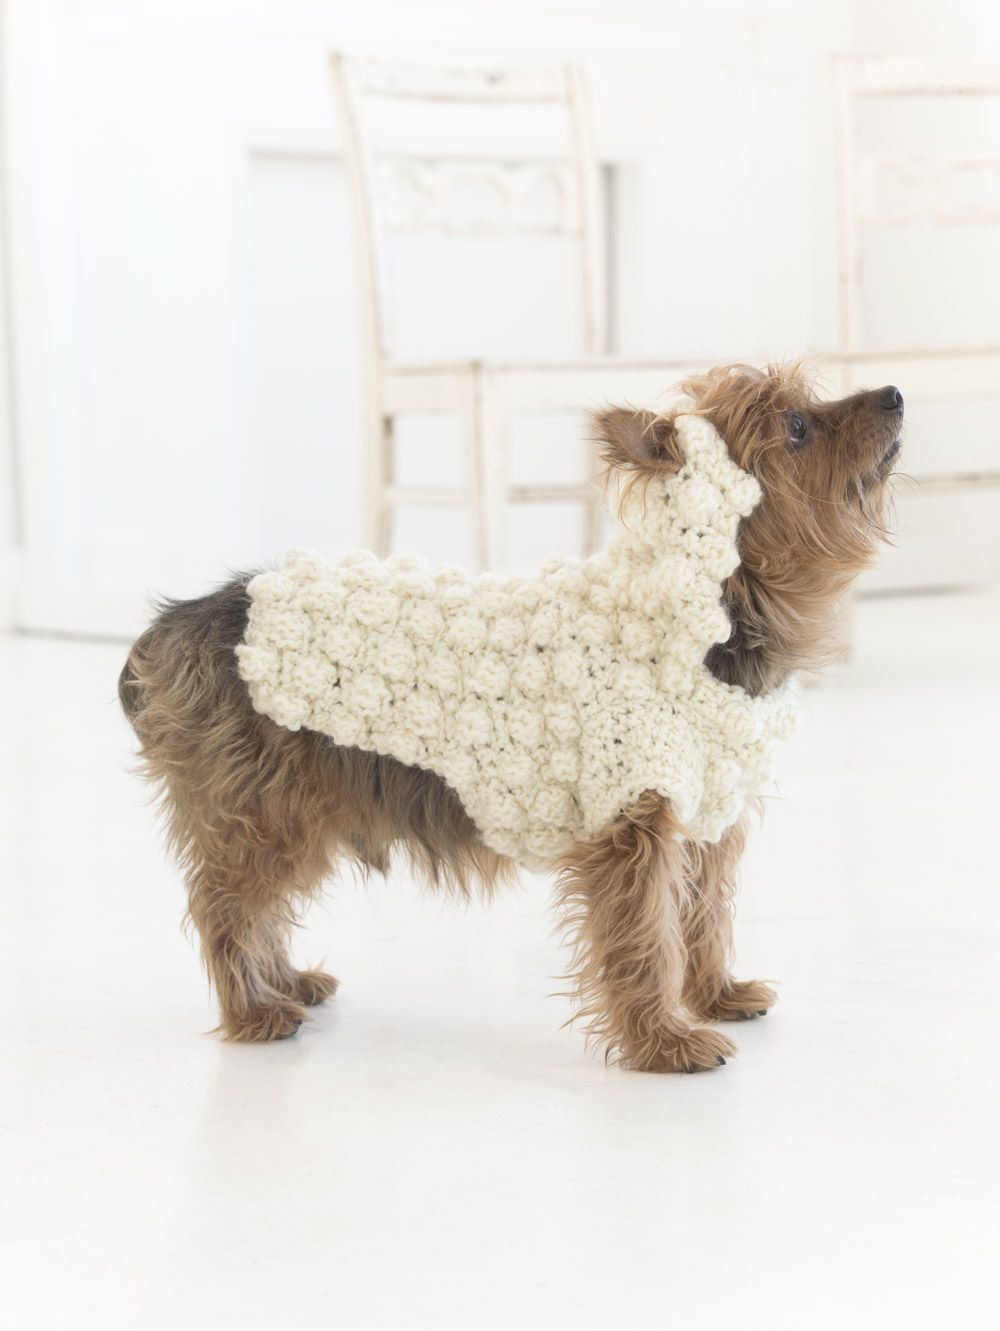 Skill level easy level 3 size varies dog size s m l xl 2015 is the year of the sheep its the year of the sheep crochet this cute sweater for your dog for halloween or just for fun pattern calls for 1 3 bankloansurffo Image collections